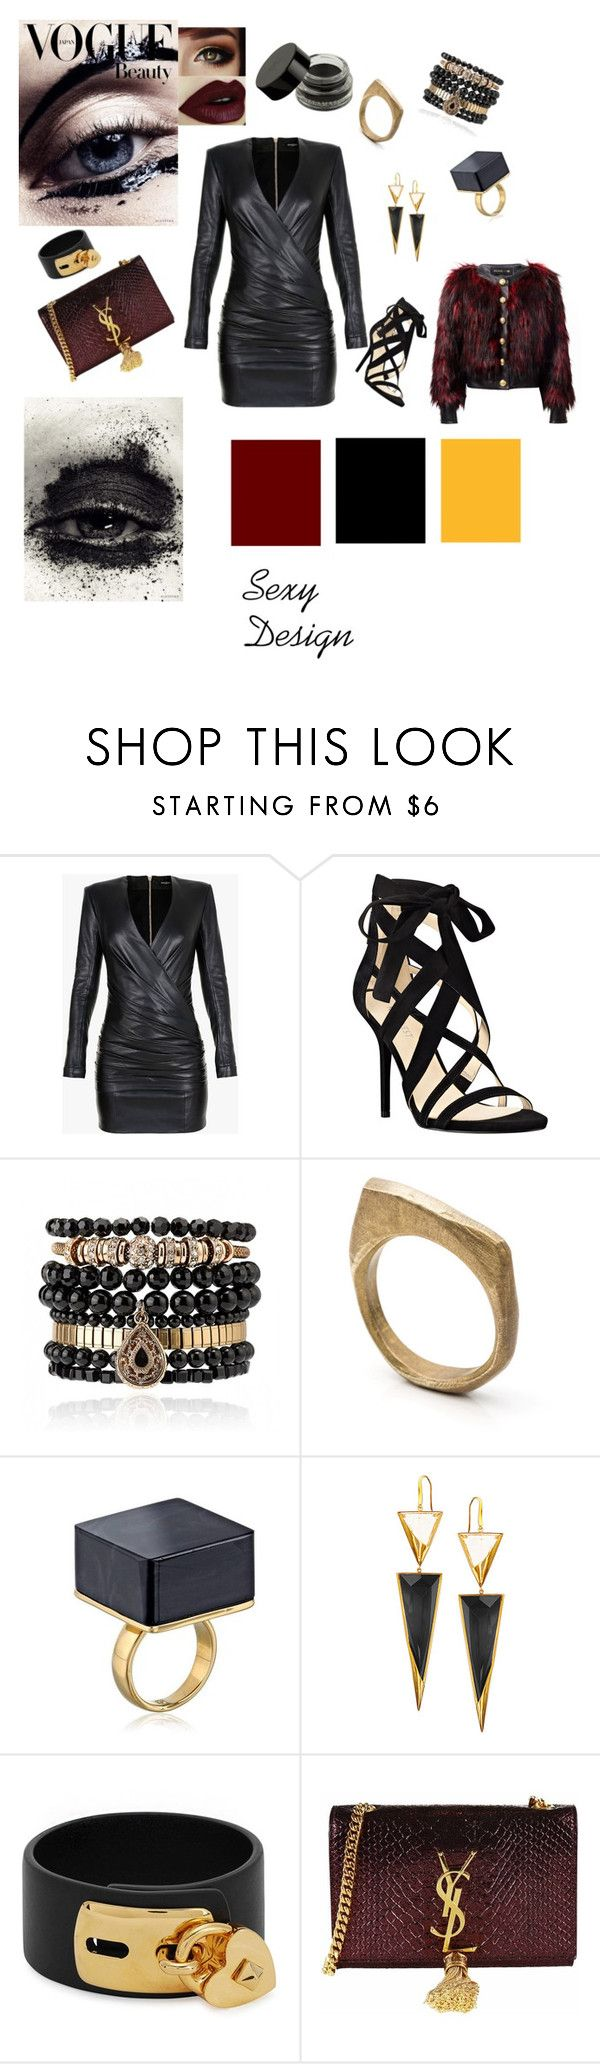 Sexy Design by loredanacossu on Polyvore featuring moda, Balmain, Nine West, Yves Saint Laurent, Lana, Valentino, Samantha Wills and by / natalie frigo